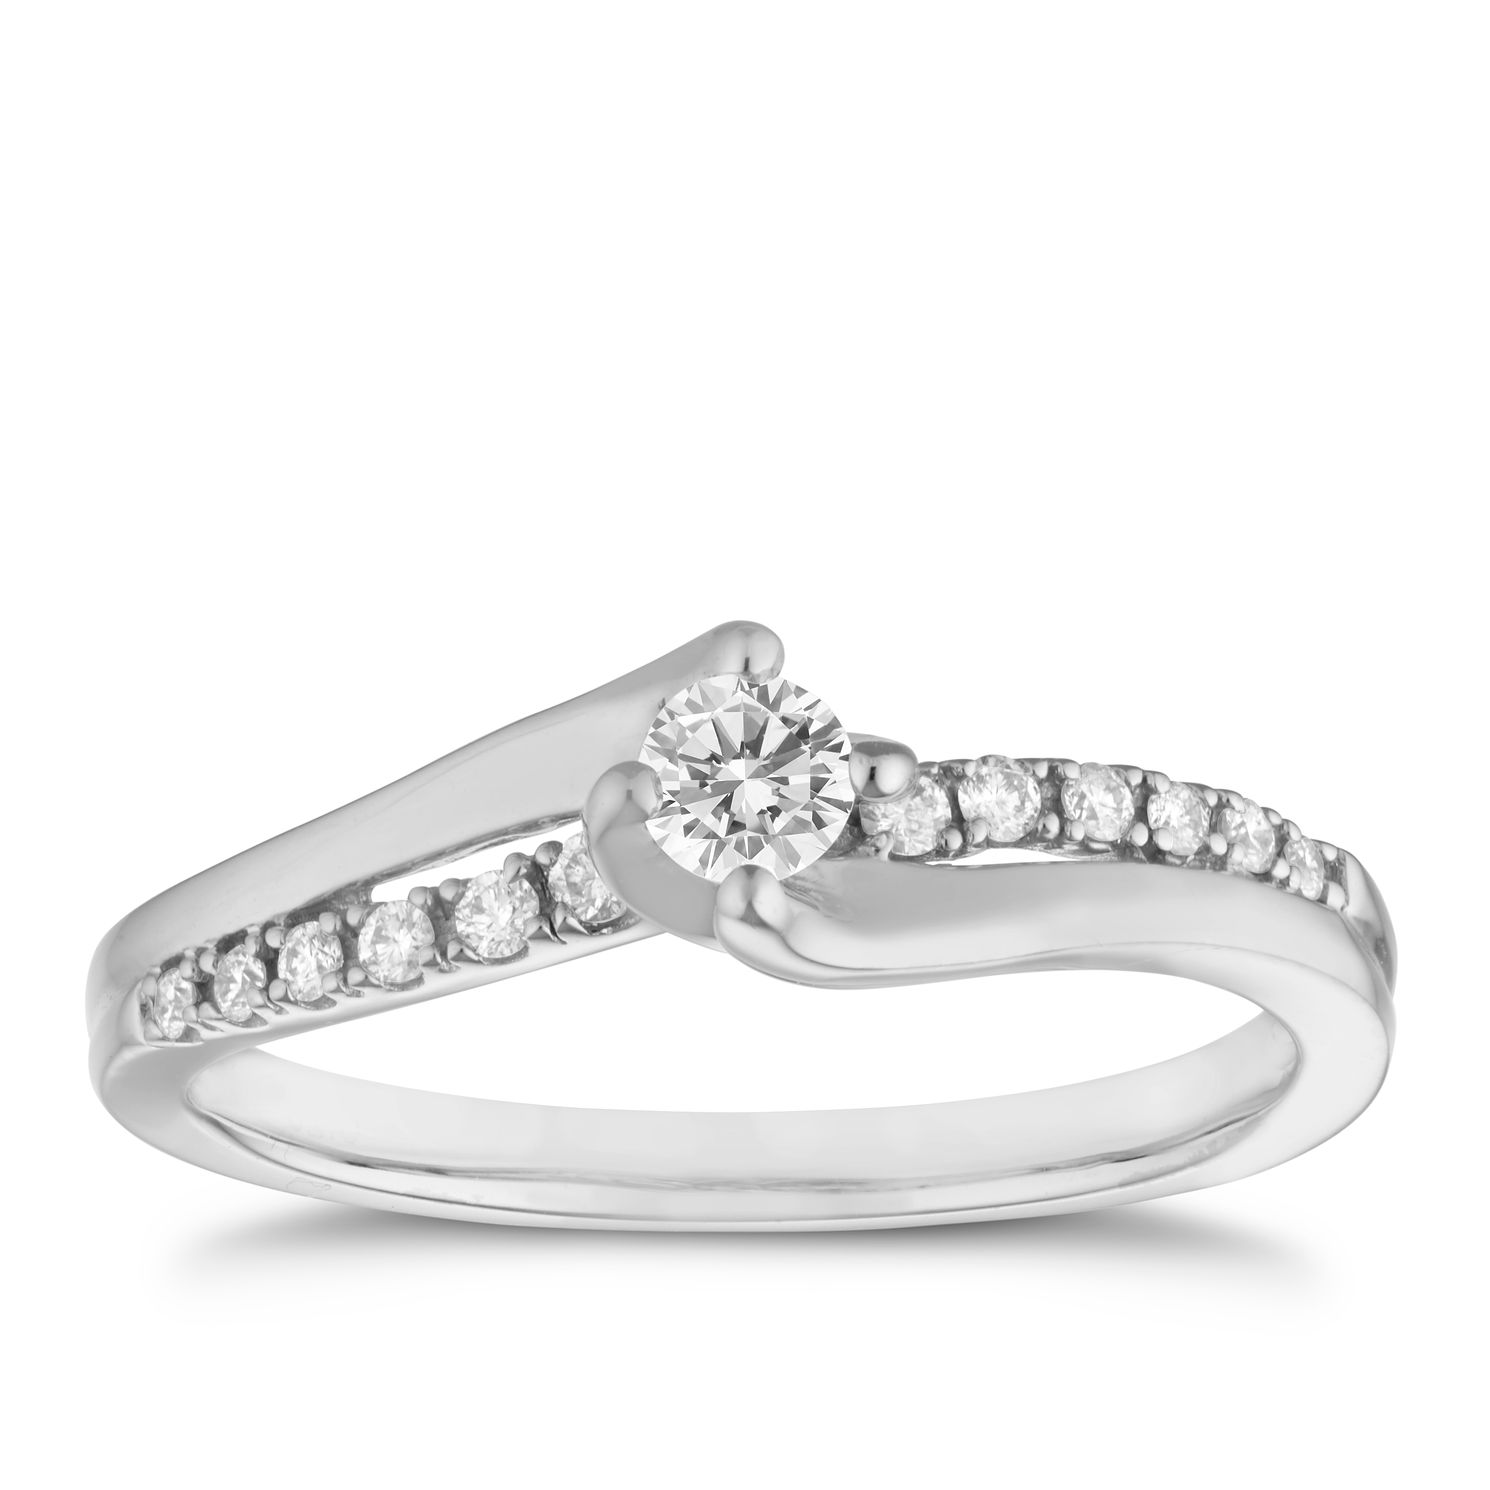 18ct White Gold 1/4ct Diamond Solitaire Ring - Product number 6674895